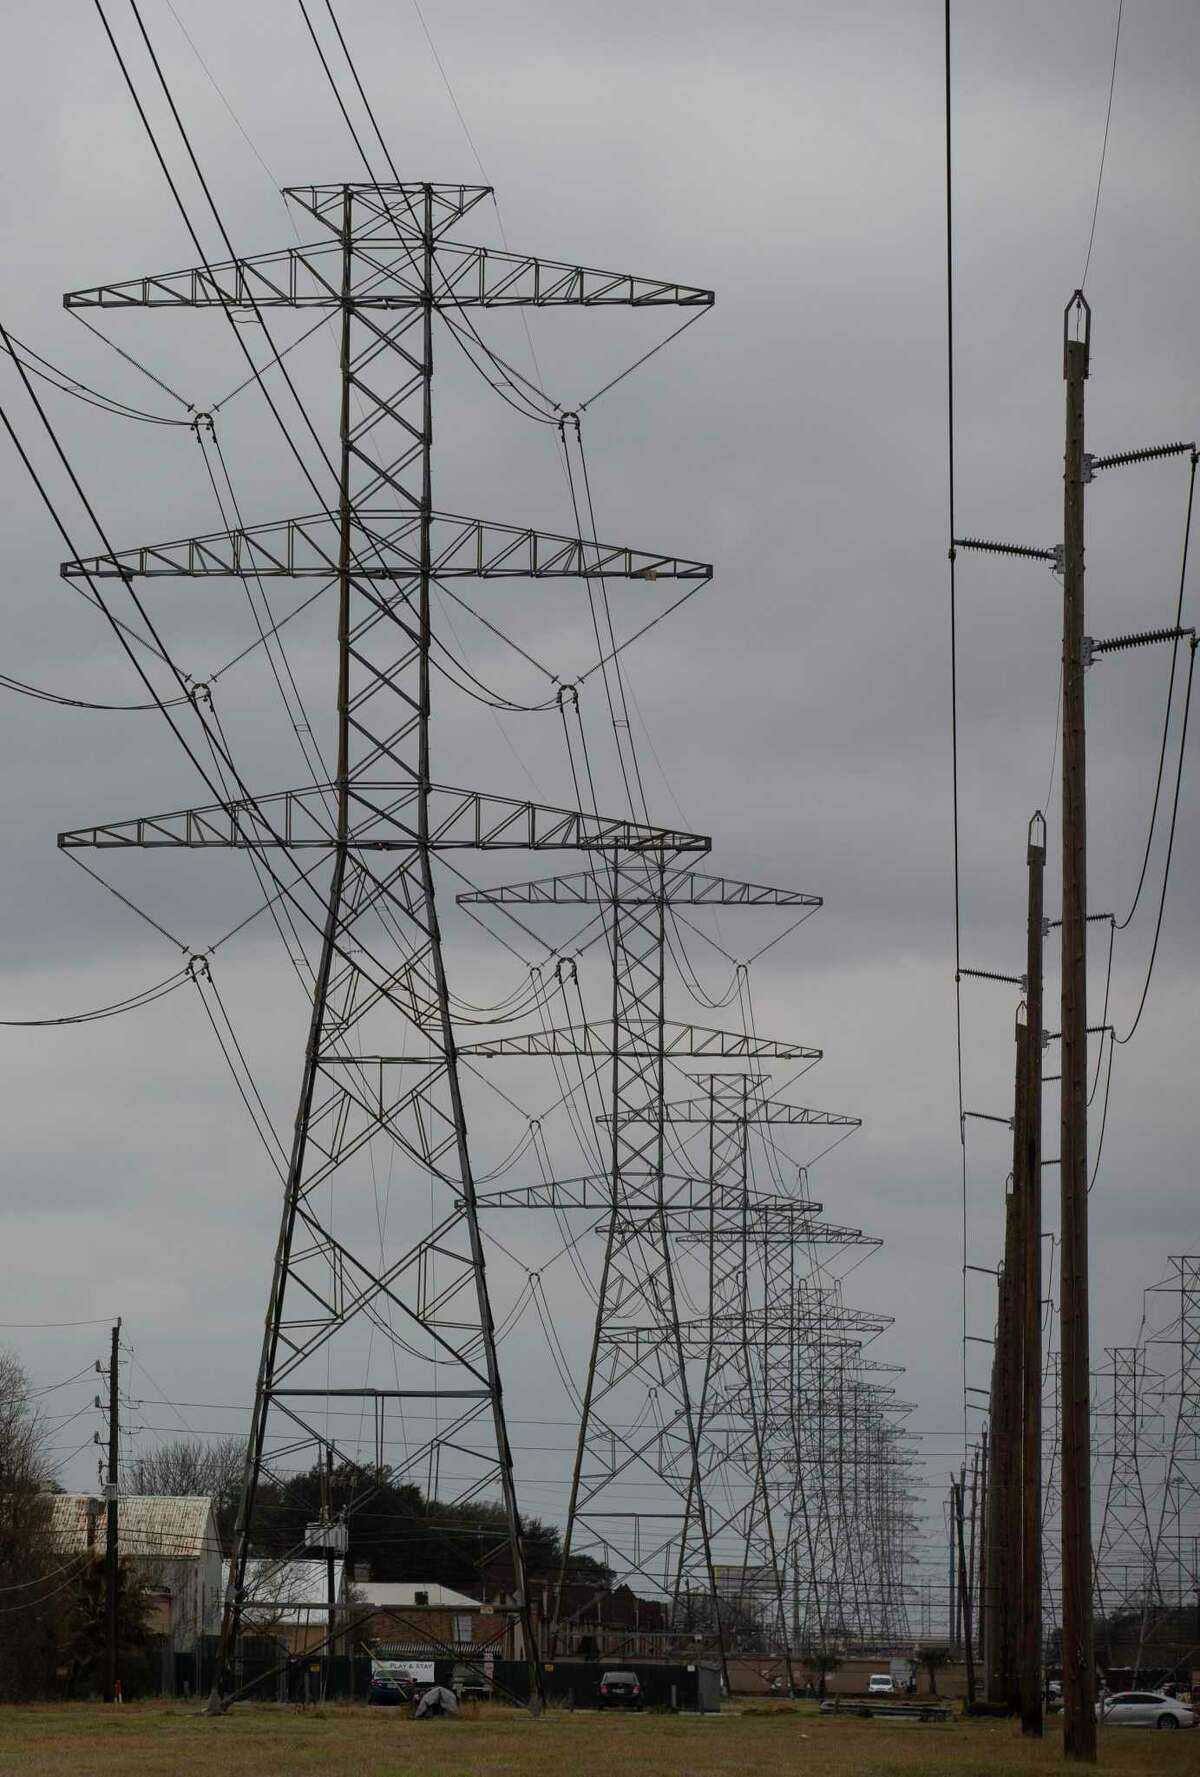 Power lines in Houston. Whether most electricity bills will go up following the recent power crisis will depend on several factors.